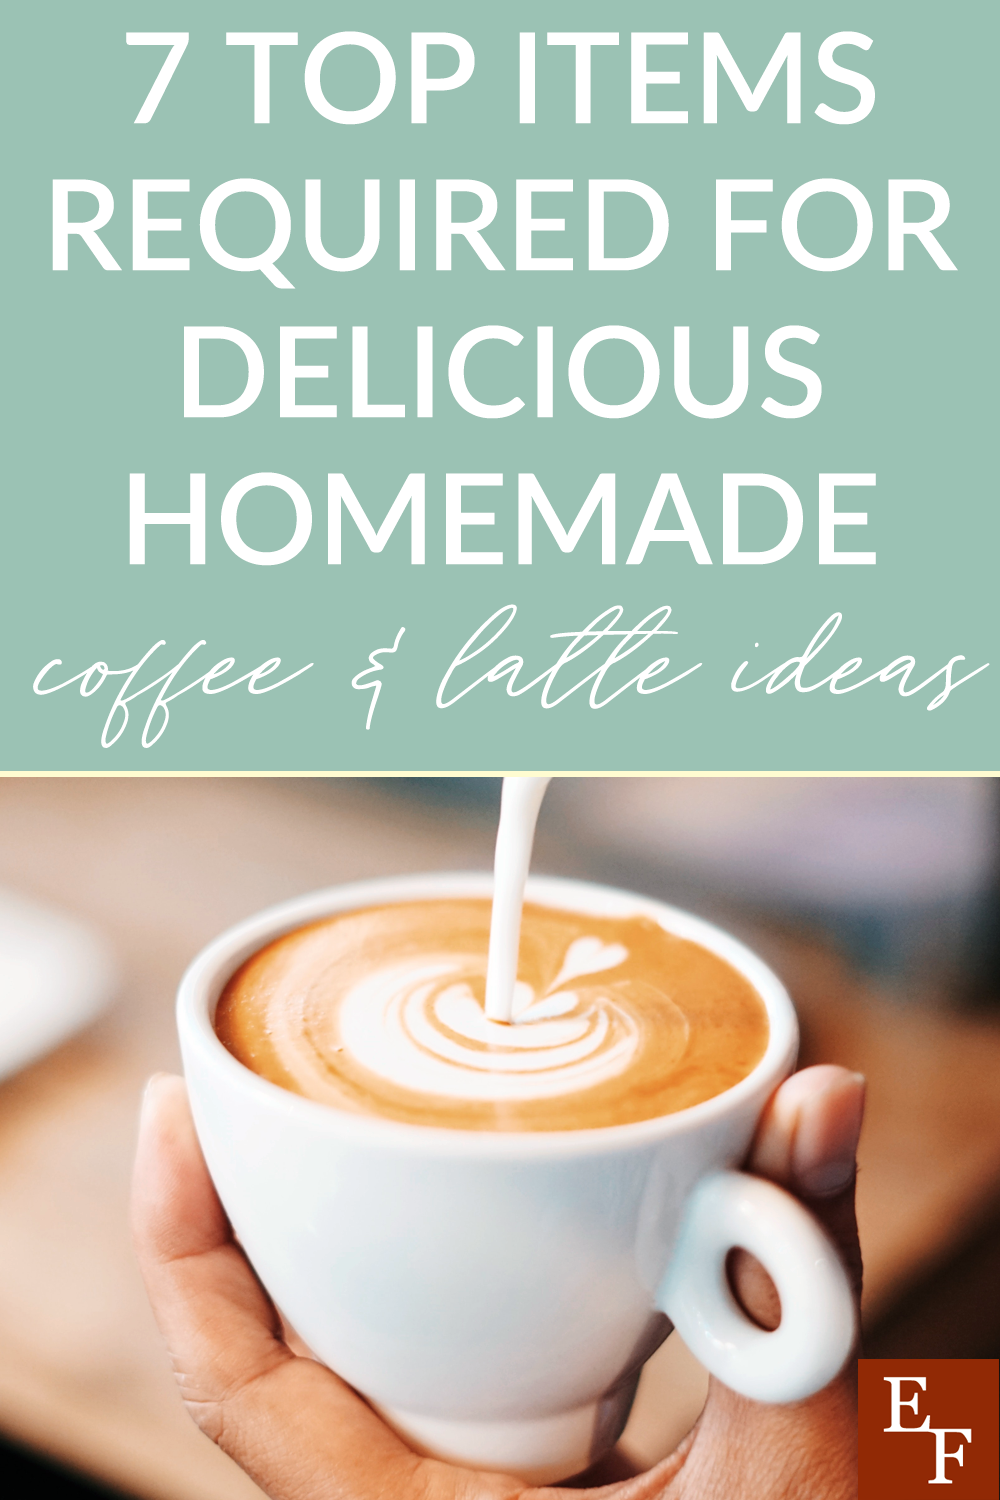 Getting coffee out can be extremely expensive. So here are 7 of our top items required for you to make delicious homemade coffee and lattes.